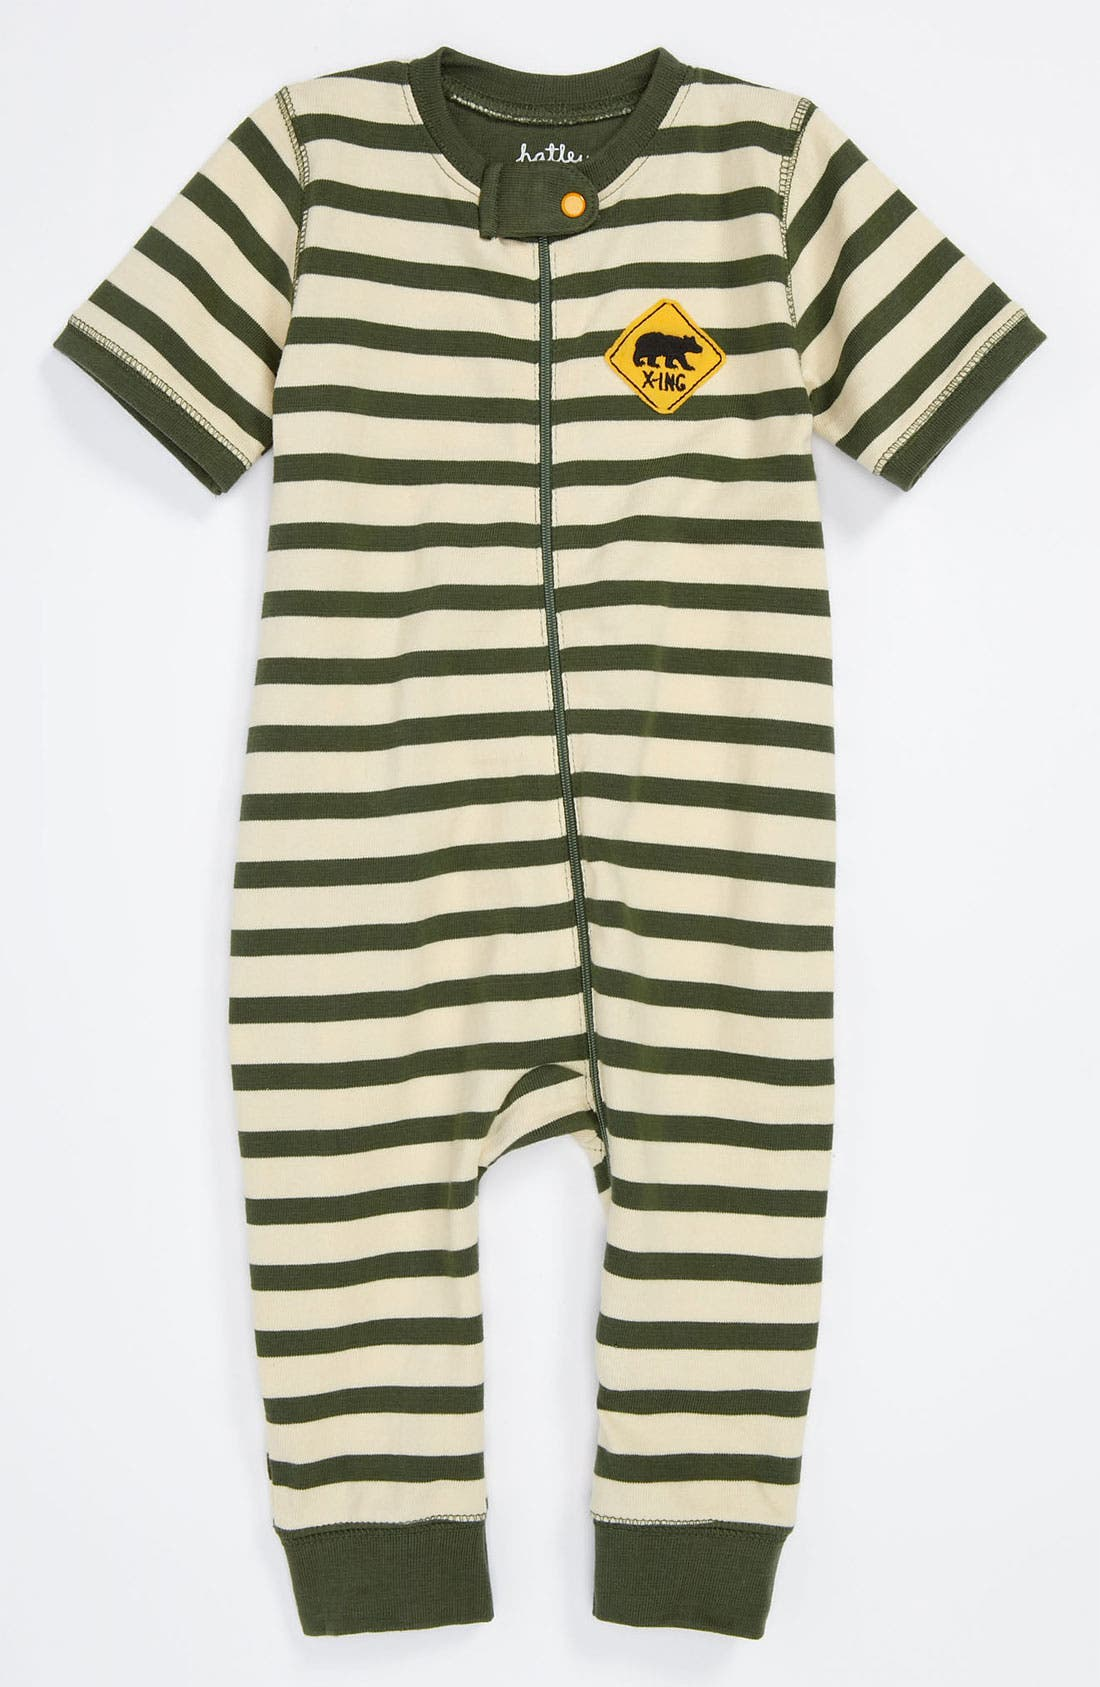 Main Image - Hatley Fitted Pajamas (Baby)